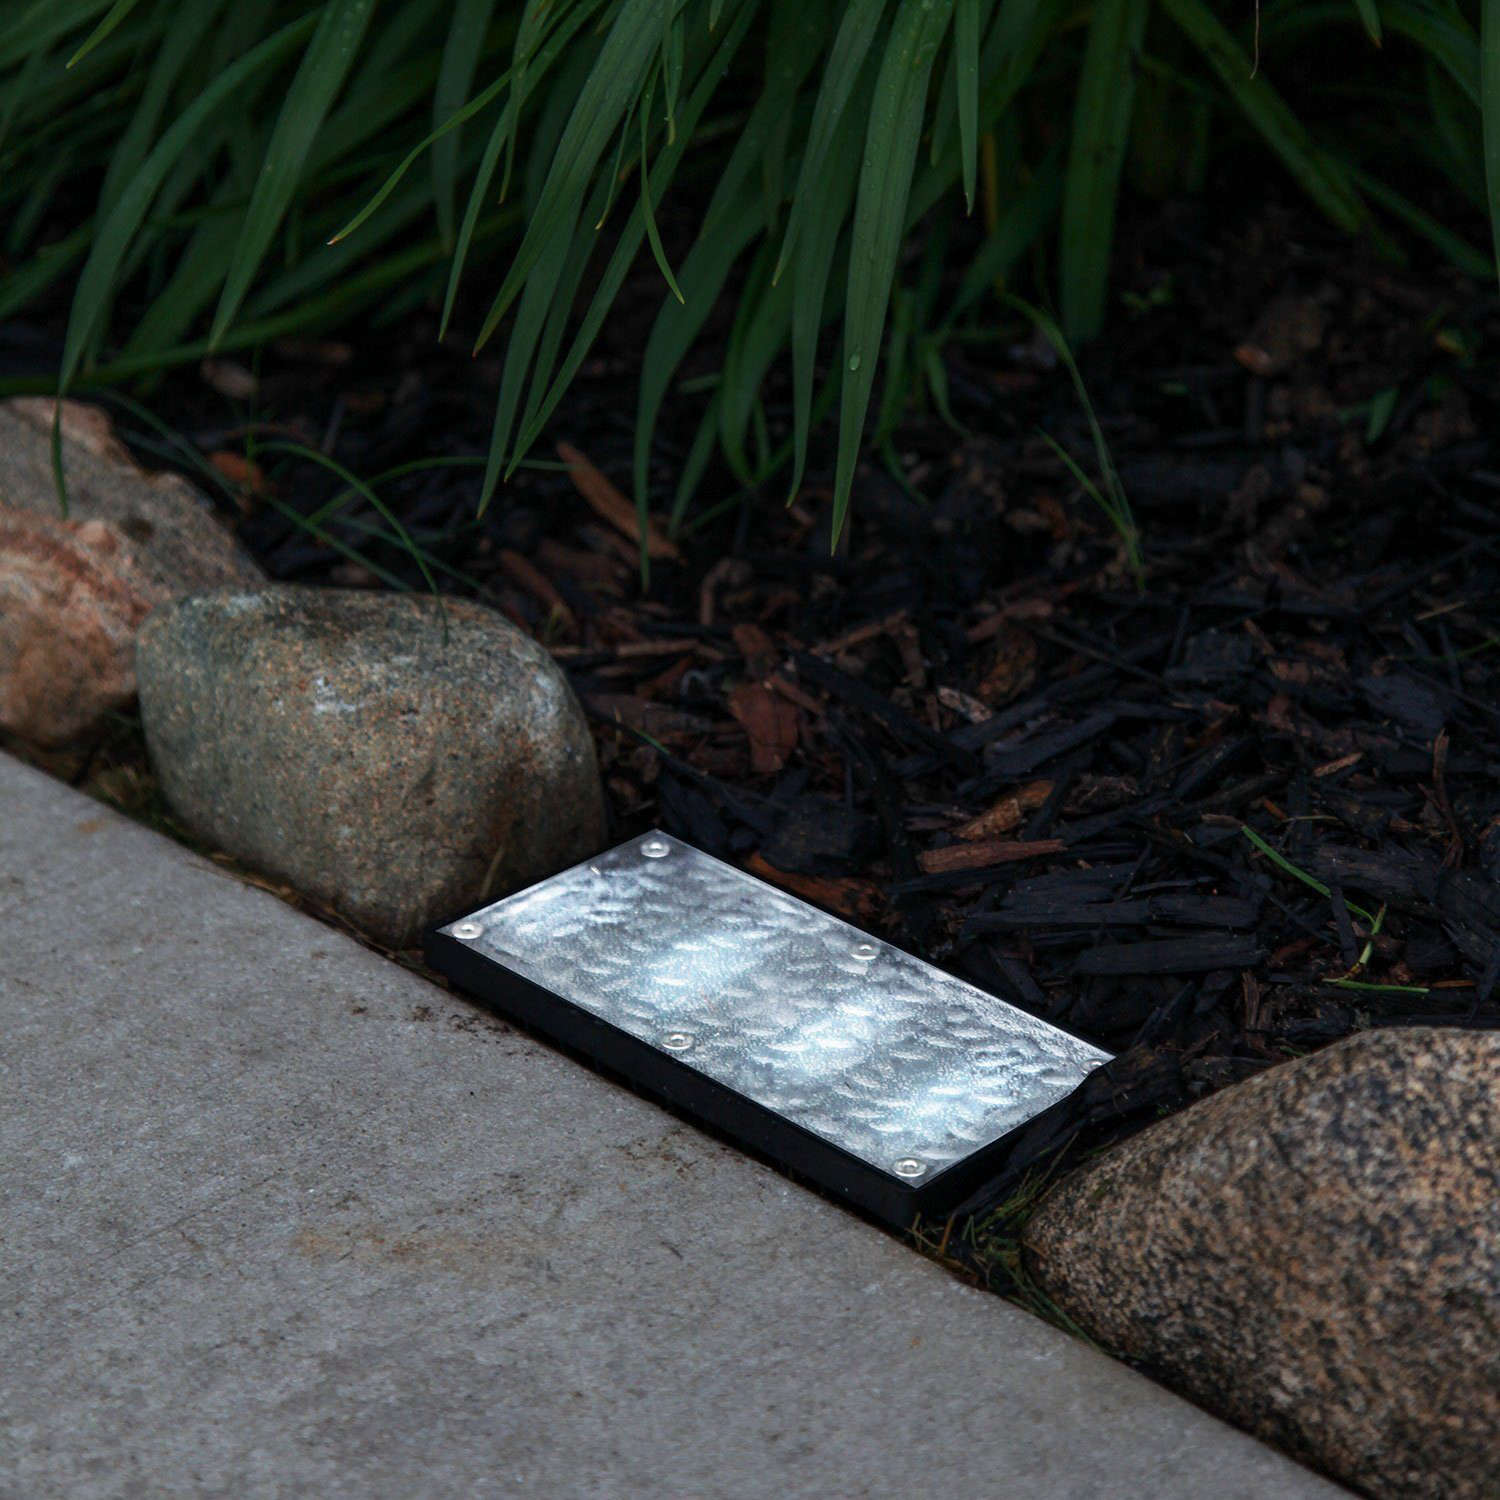 Driveway Lights Guide Outdoor Lighting Ideas Tips: Recessed Rectangular Cool White Polyresin Solar Landscape